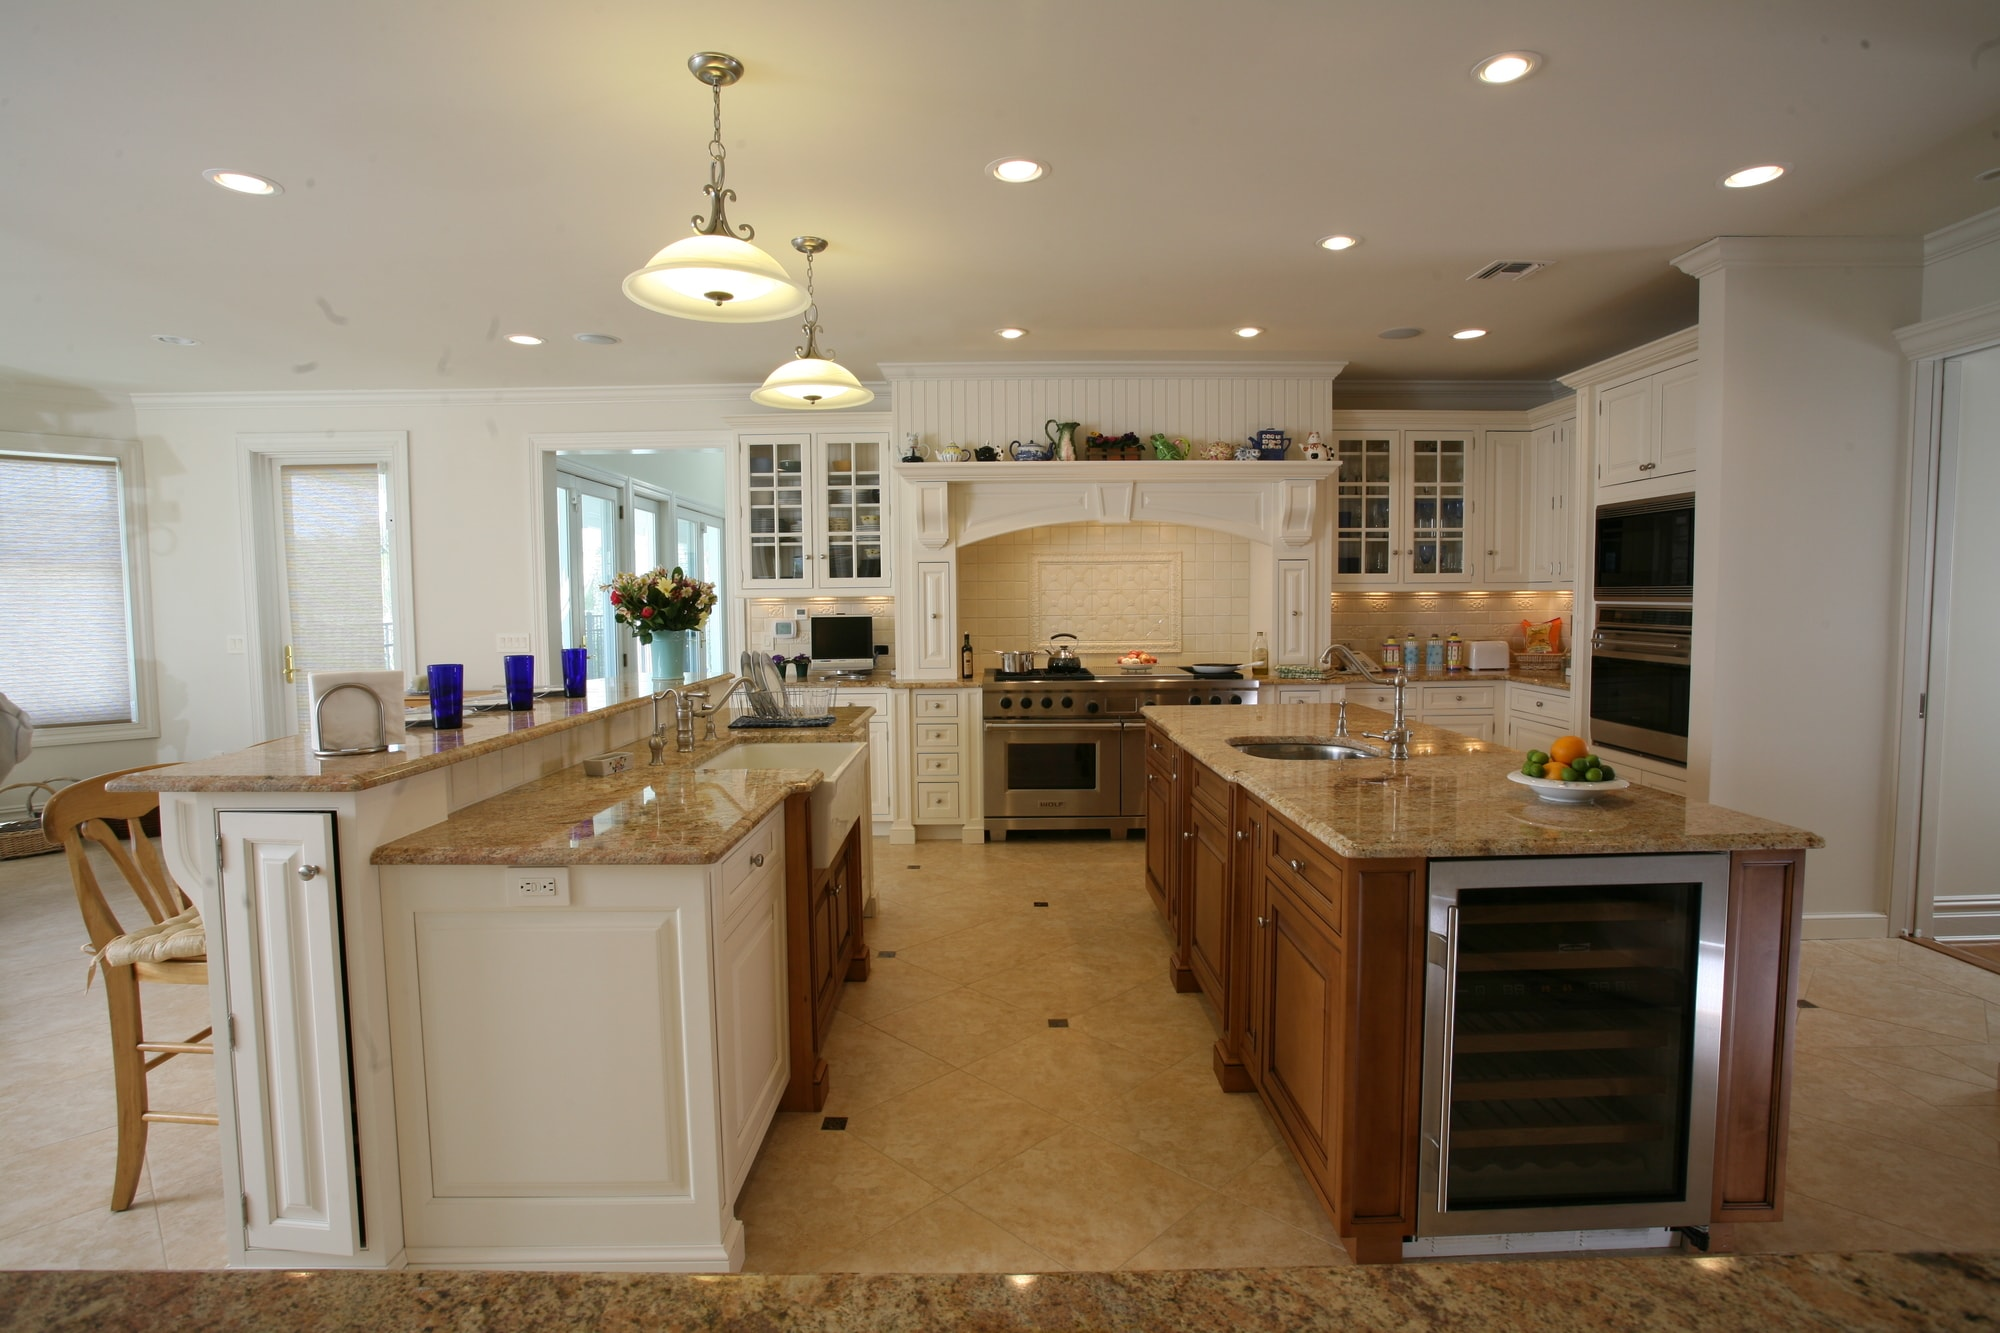 Traditional style kitchen with faucet on each kitchen island